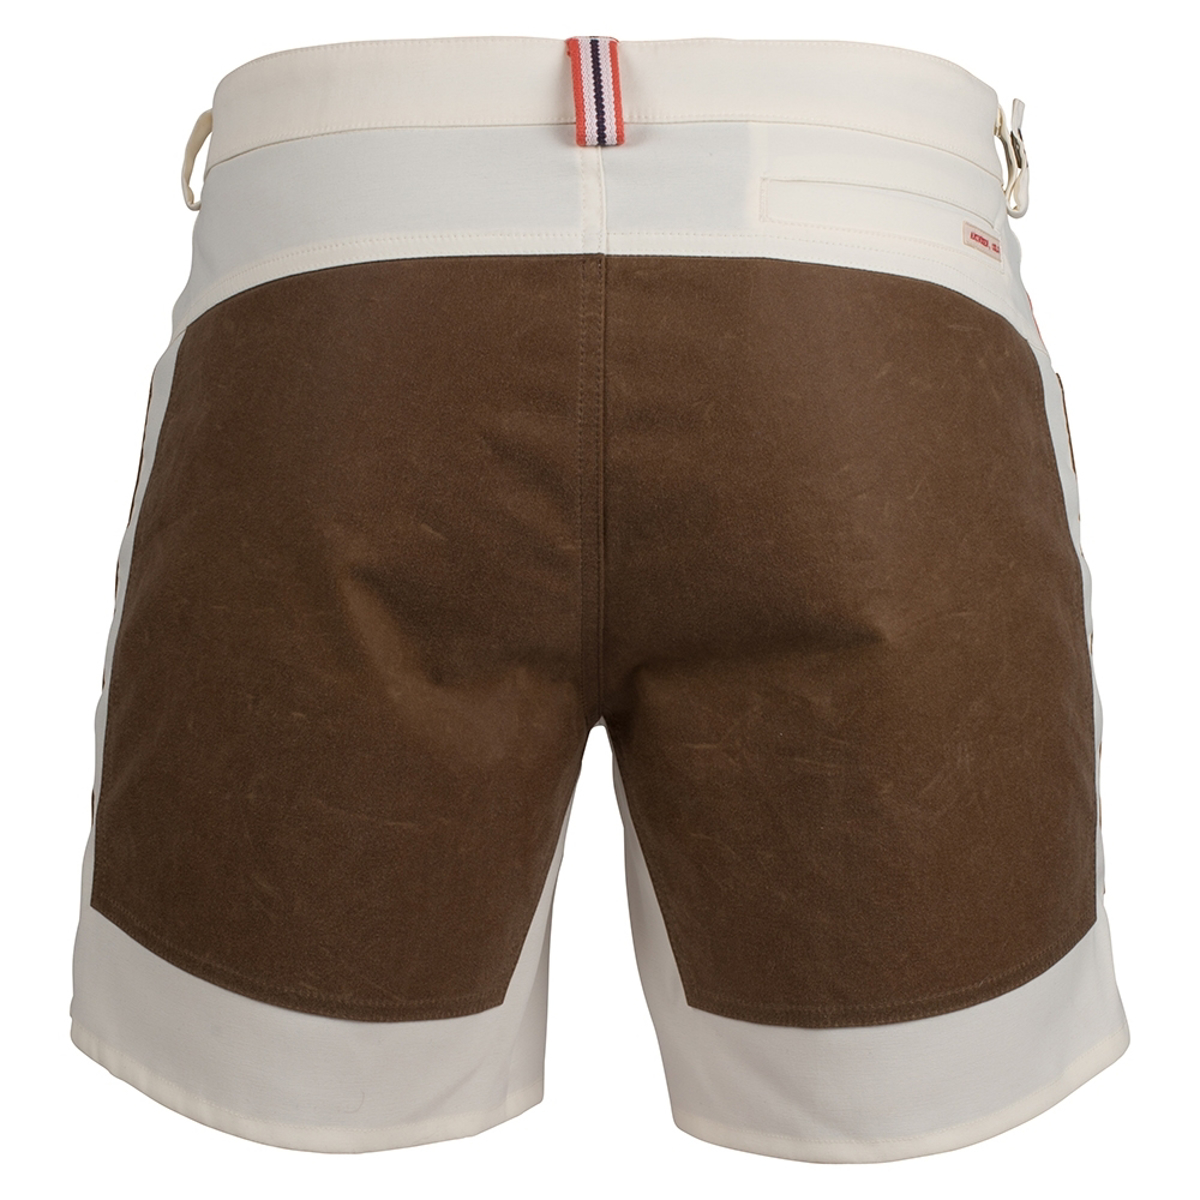 Bilde av Amundsen 7incher field shorts mens offwhite MSS53.2.010